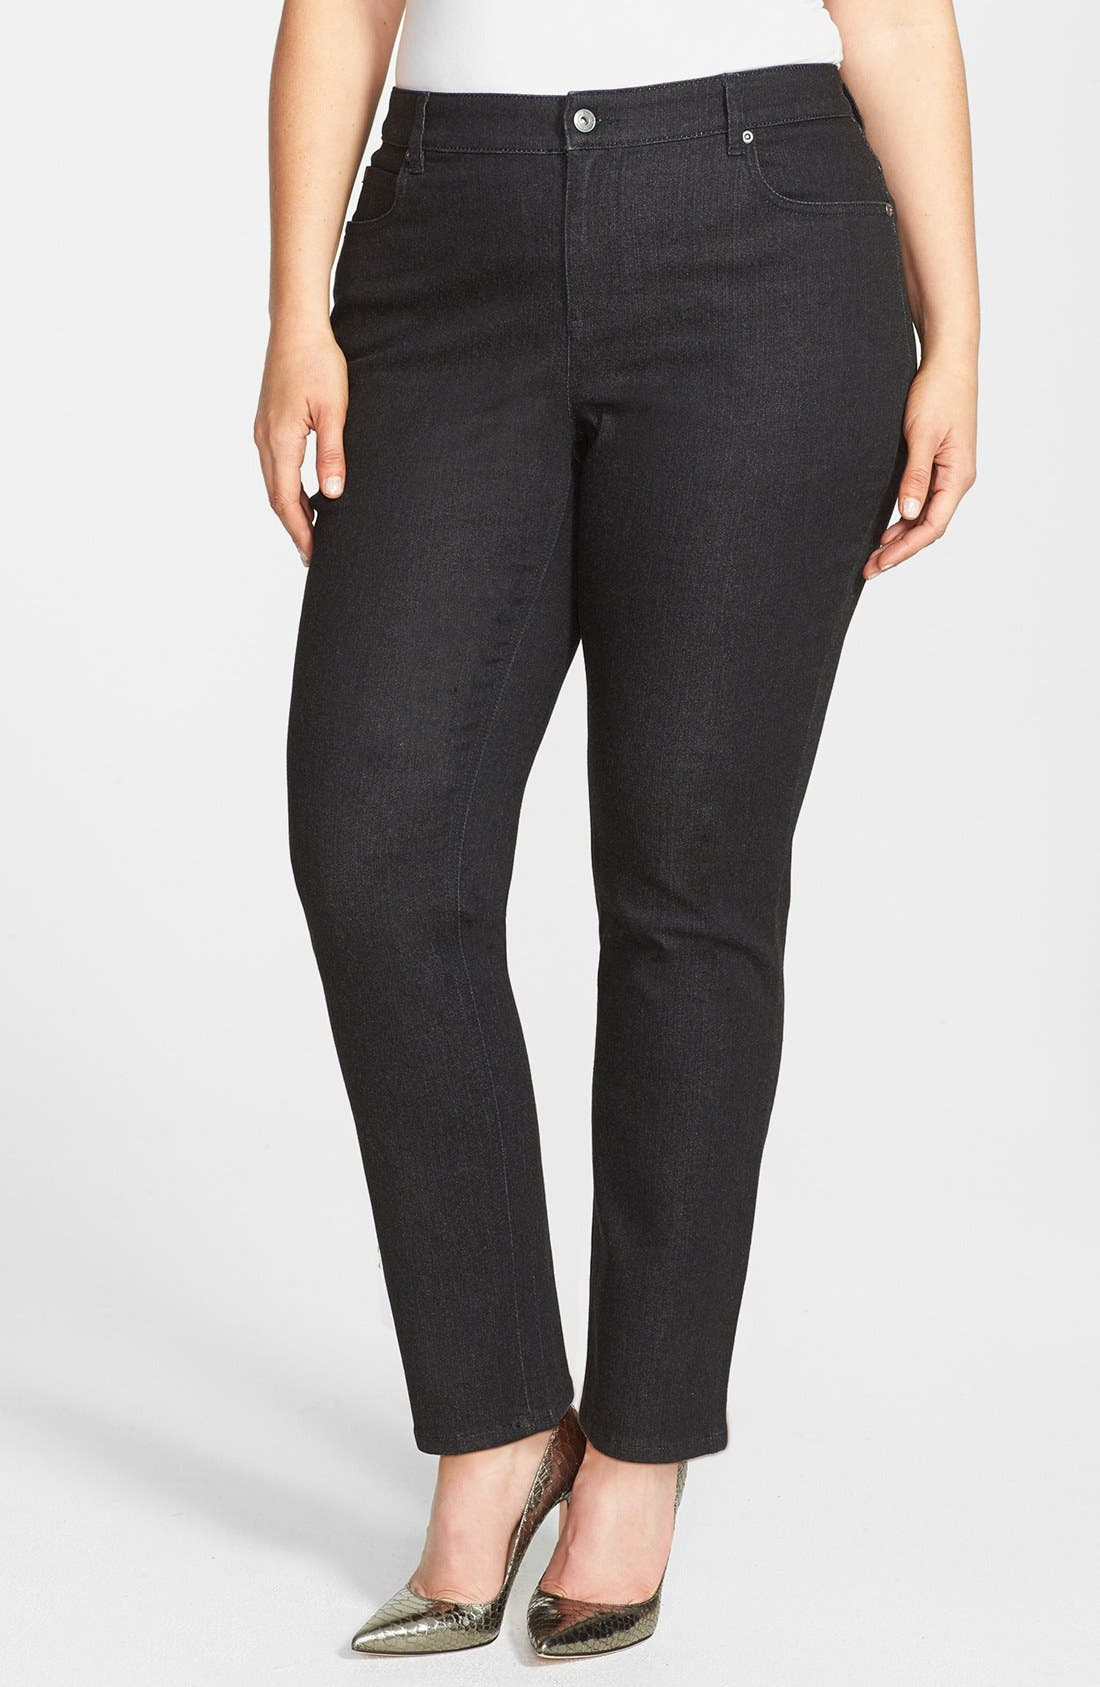 Main Image - Two by Vince Camuto Skinny Jeans (Black Denim) (Plus Size)